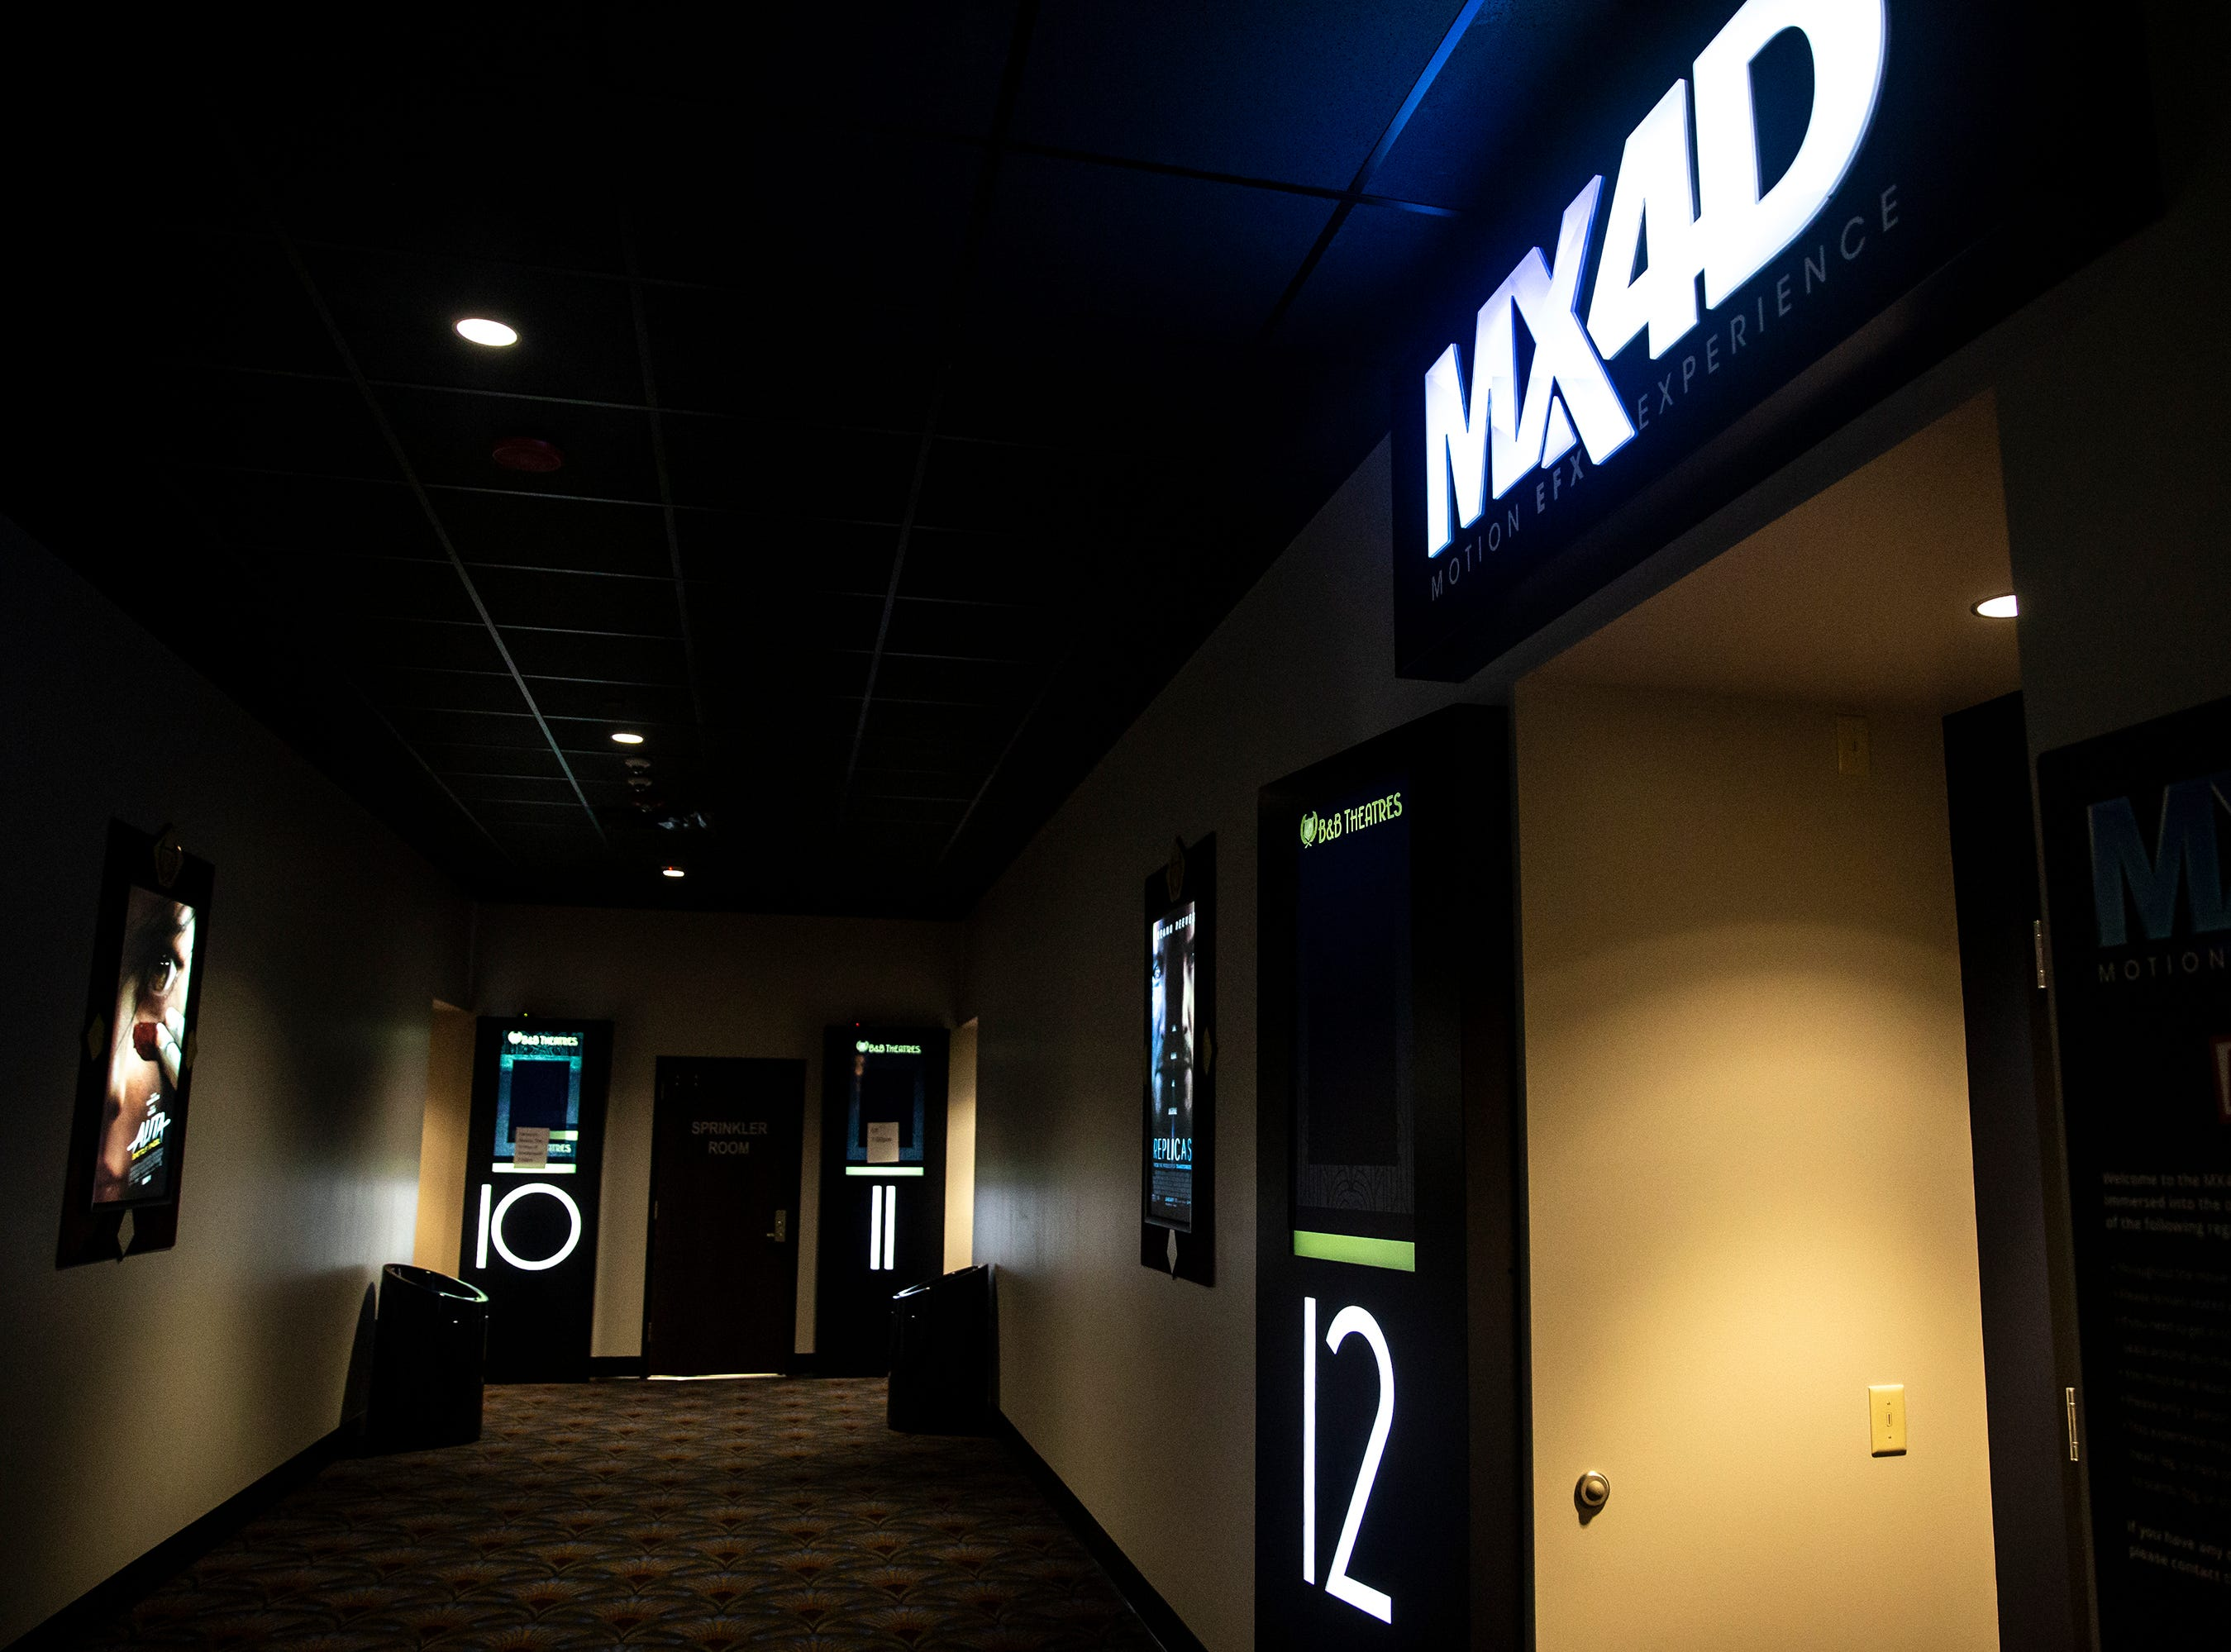 The MX4D theater at B & B Ankeny 12 & B-Roll Bowling has seats that move and effects that mimic the weather, on Sunday, Dec. 9, 2018, in Ankeny.